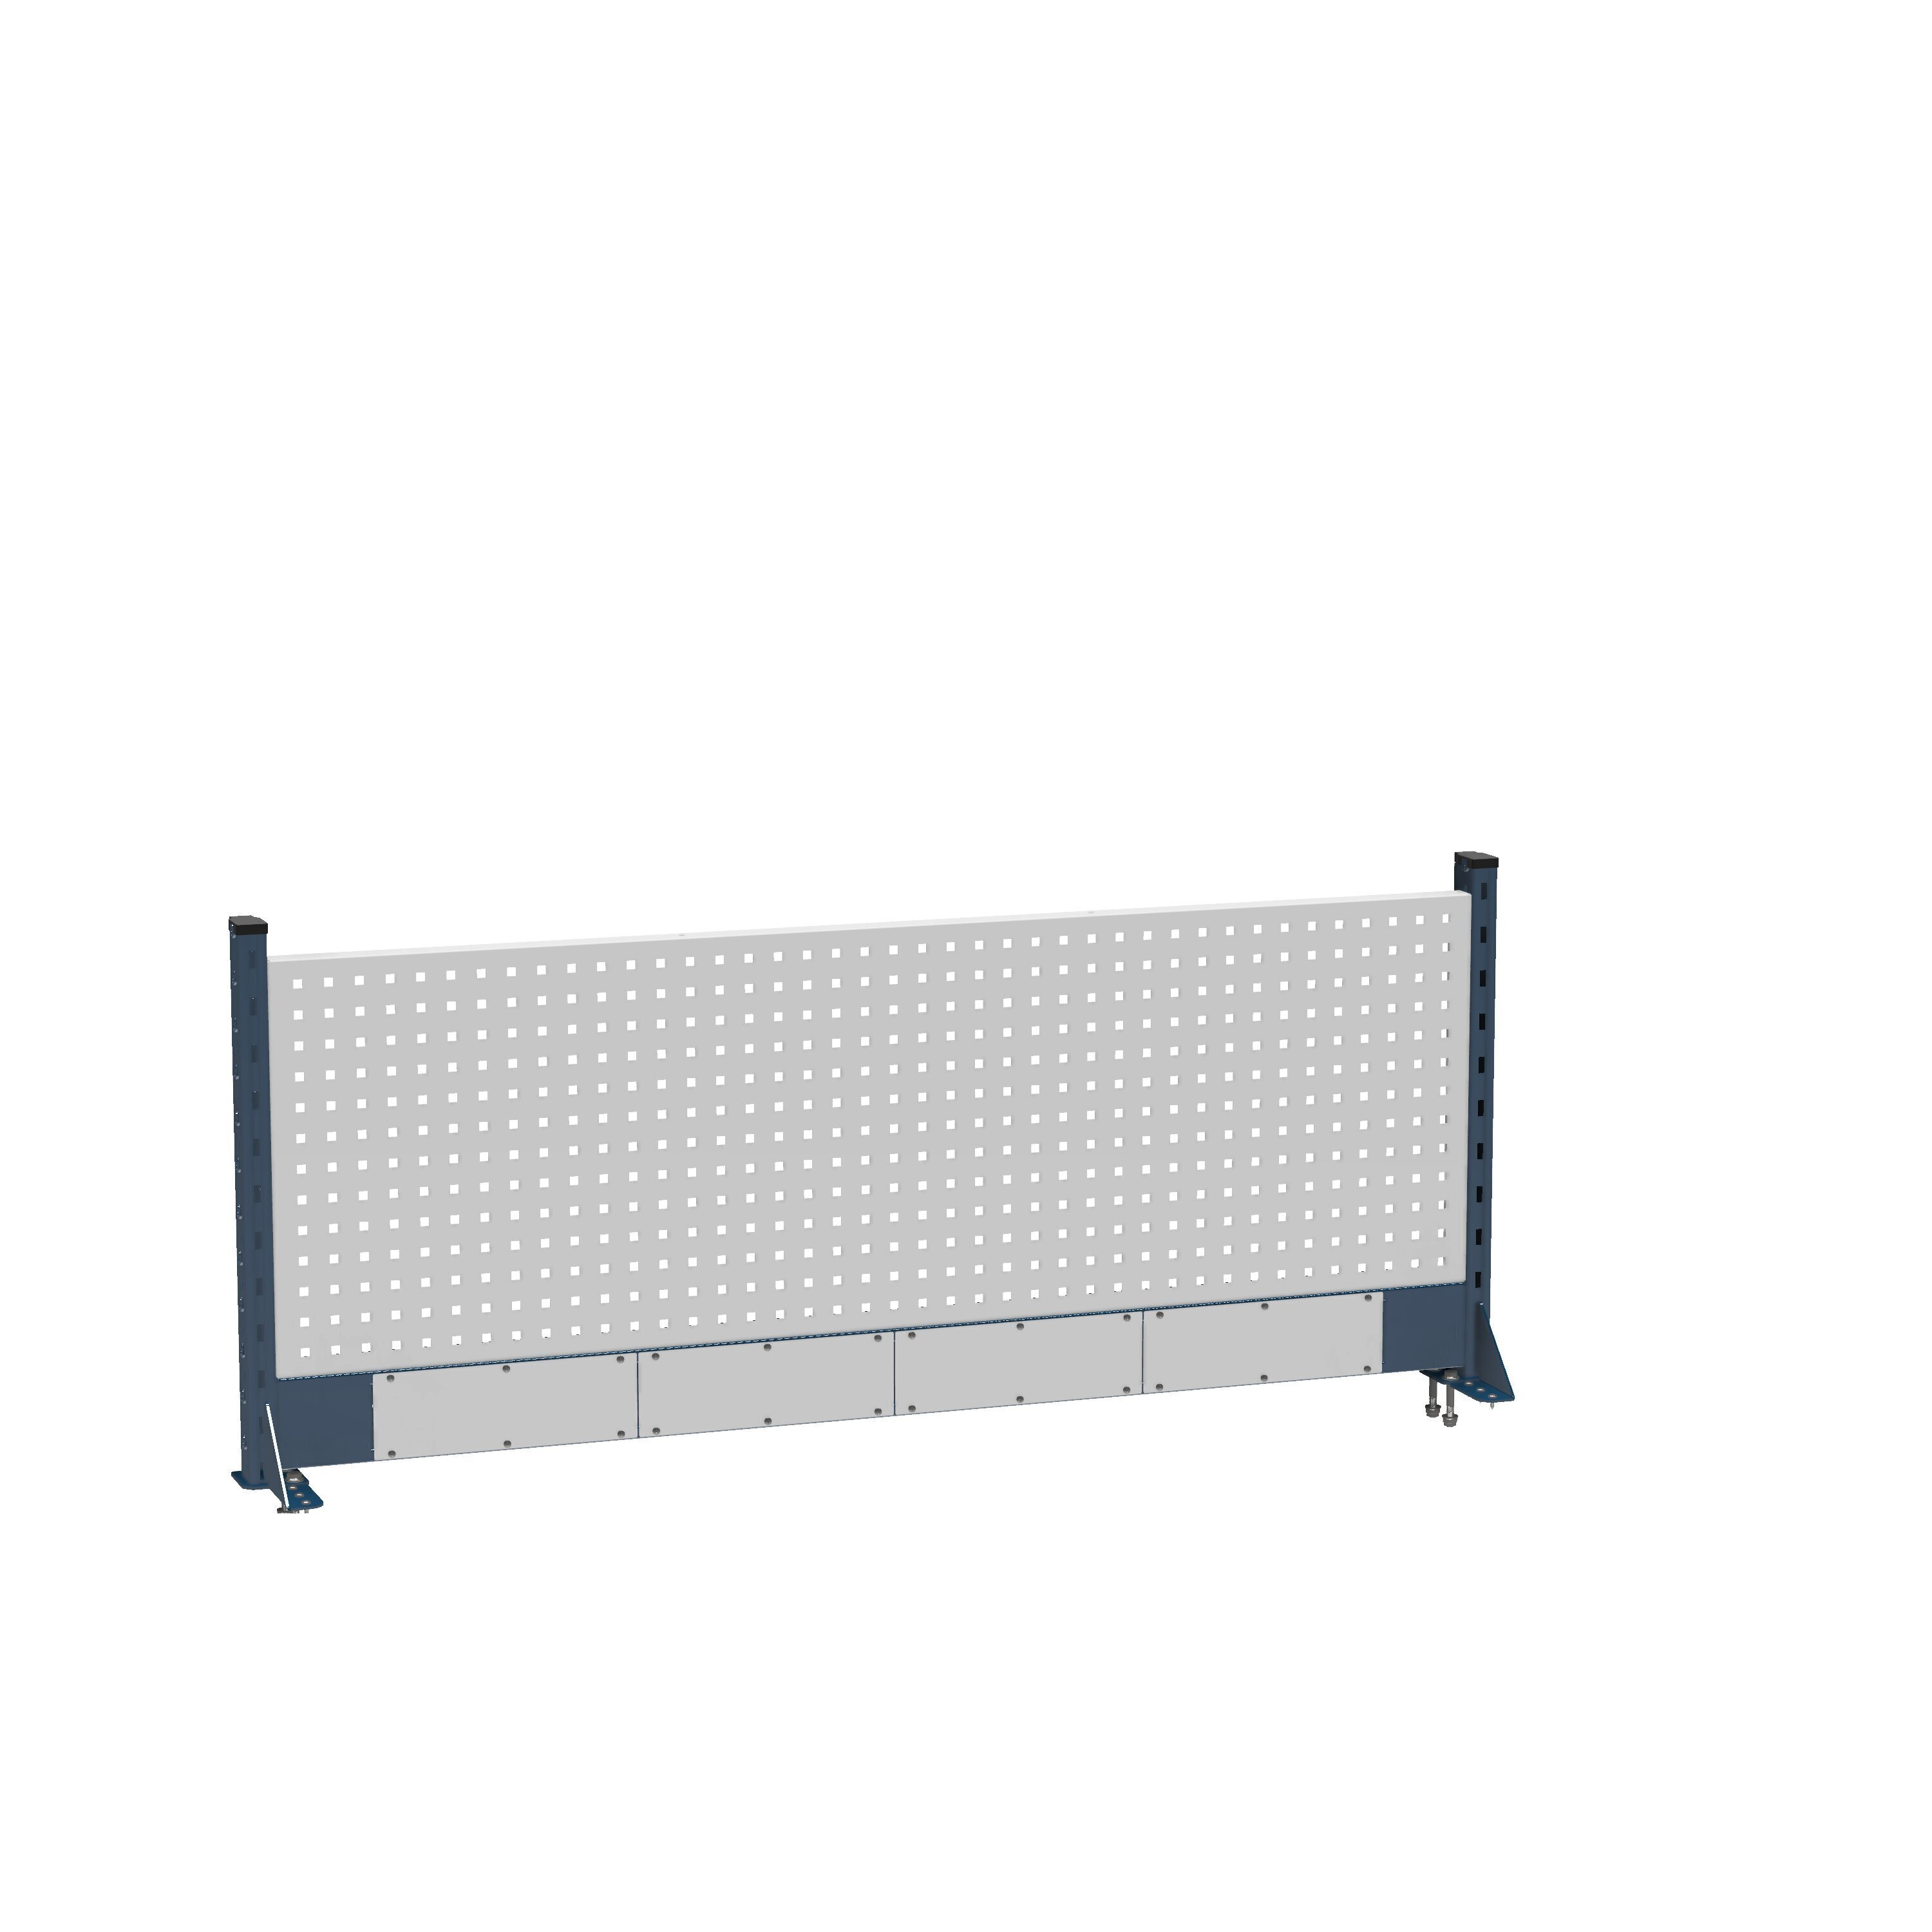 DiKom Perforated Panel VS-150-E4